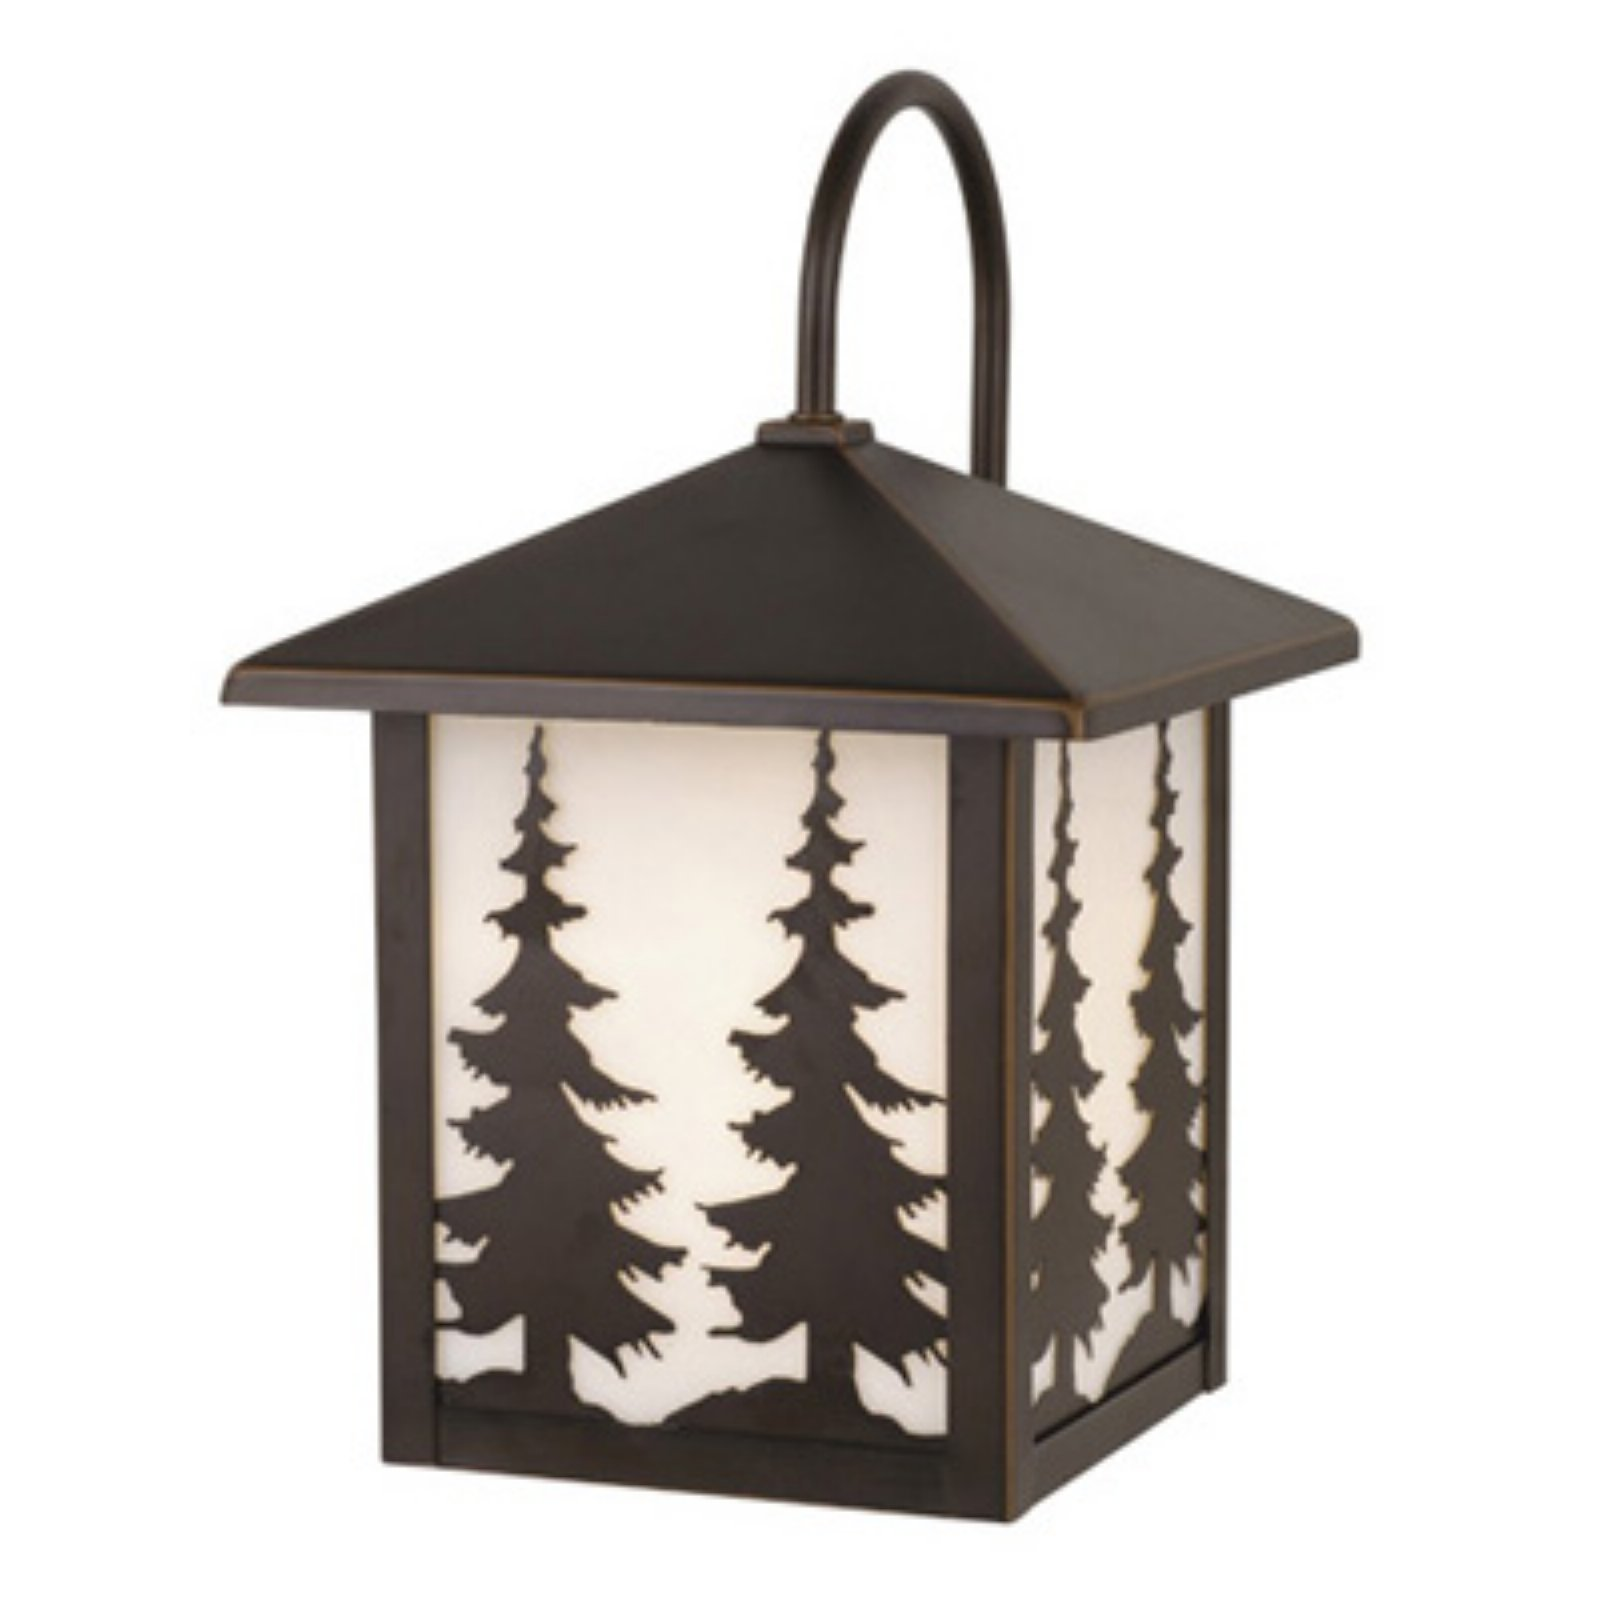 Vaxcel Yosemite Outdoor 8 in. Wall Light